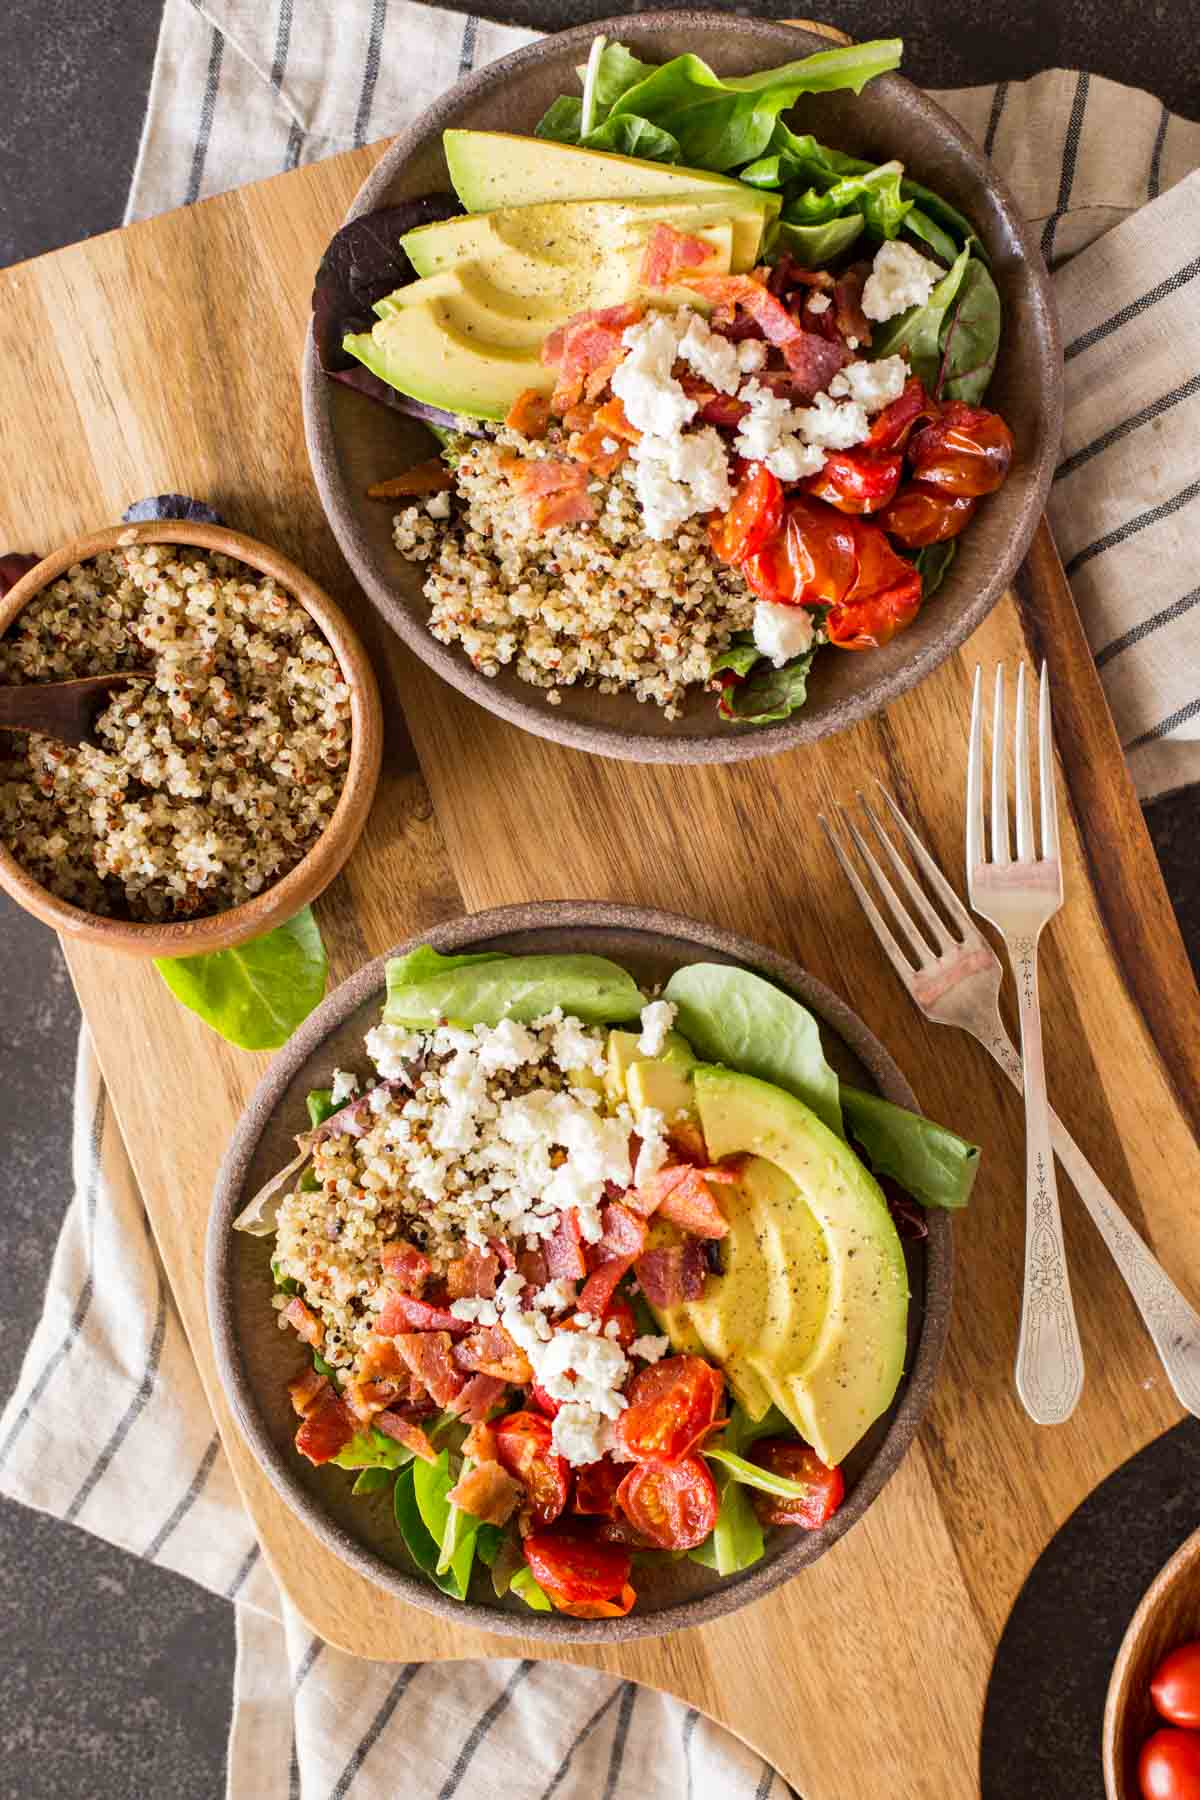 These BLT Bliss Bowls have so much going on! They've got mixed baby greens, oven roasted tomatoes, crisp bacon, avocado, nutty quinoa, and creamy feta.